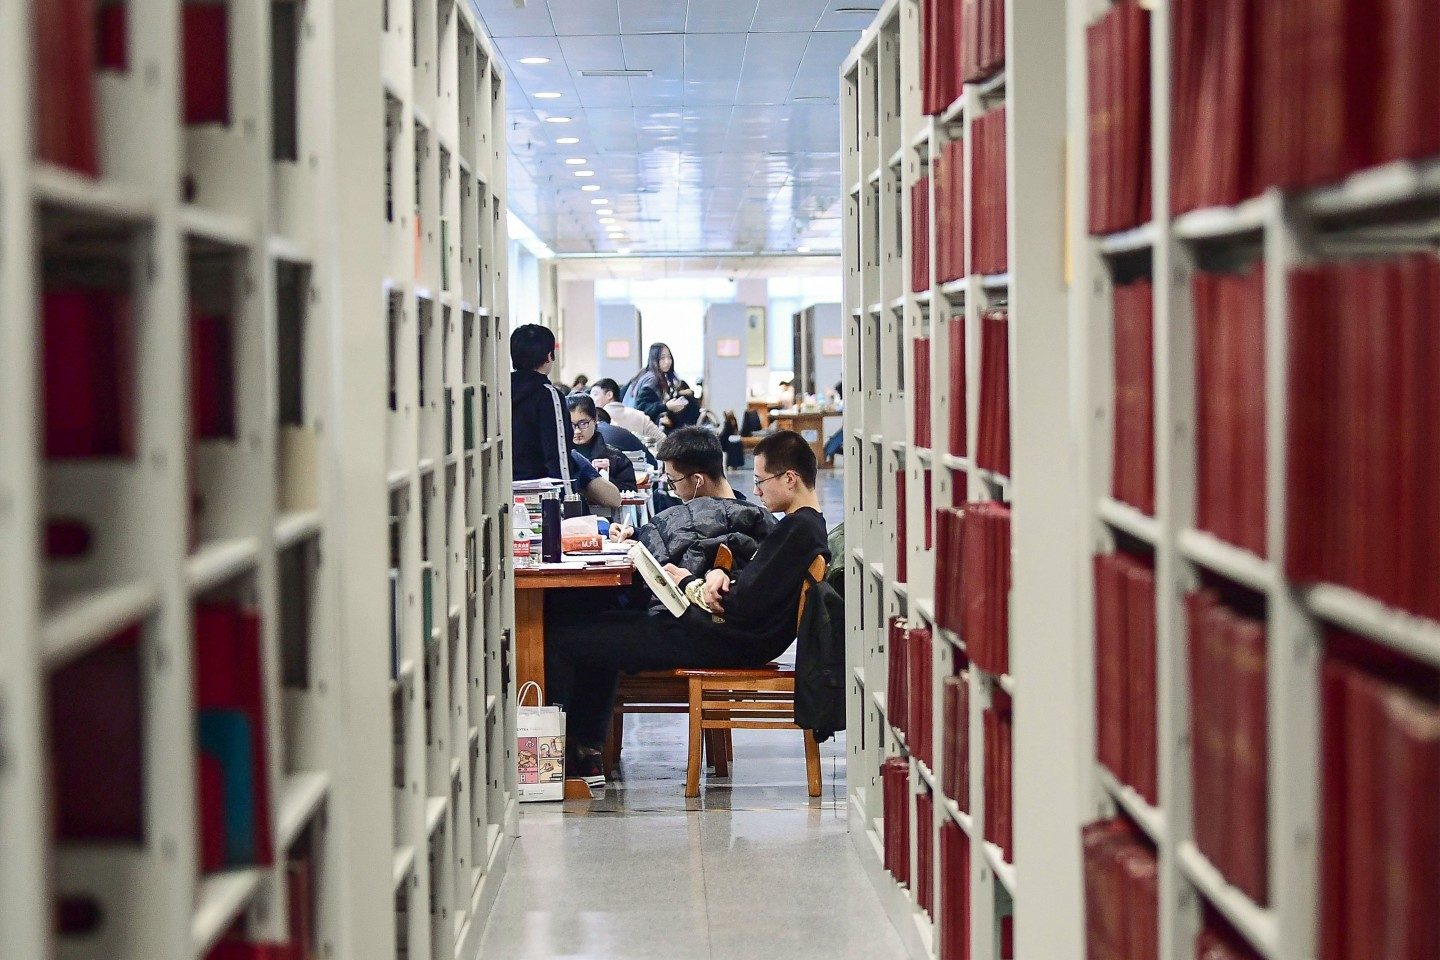 Examinations play a huge role in China society. This photo taken on November 26, 2019 shows university students preparing for the upcoming National Postgraduate Entrance Exam (NPEE) at a library in Shenyang in China's northeastern Liaoning province. (STR/AFP)